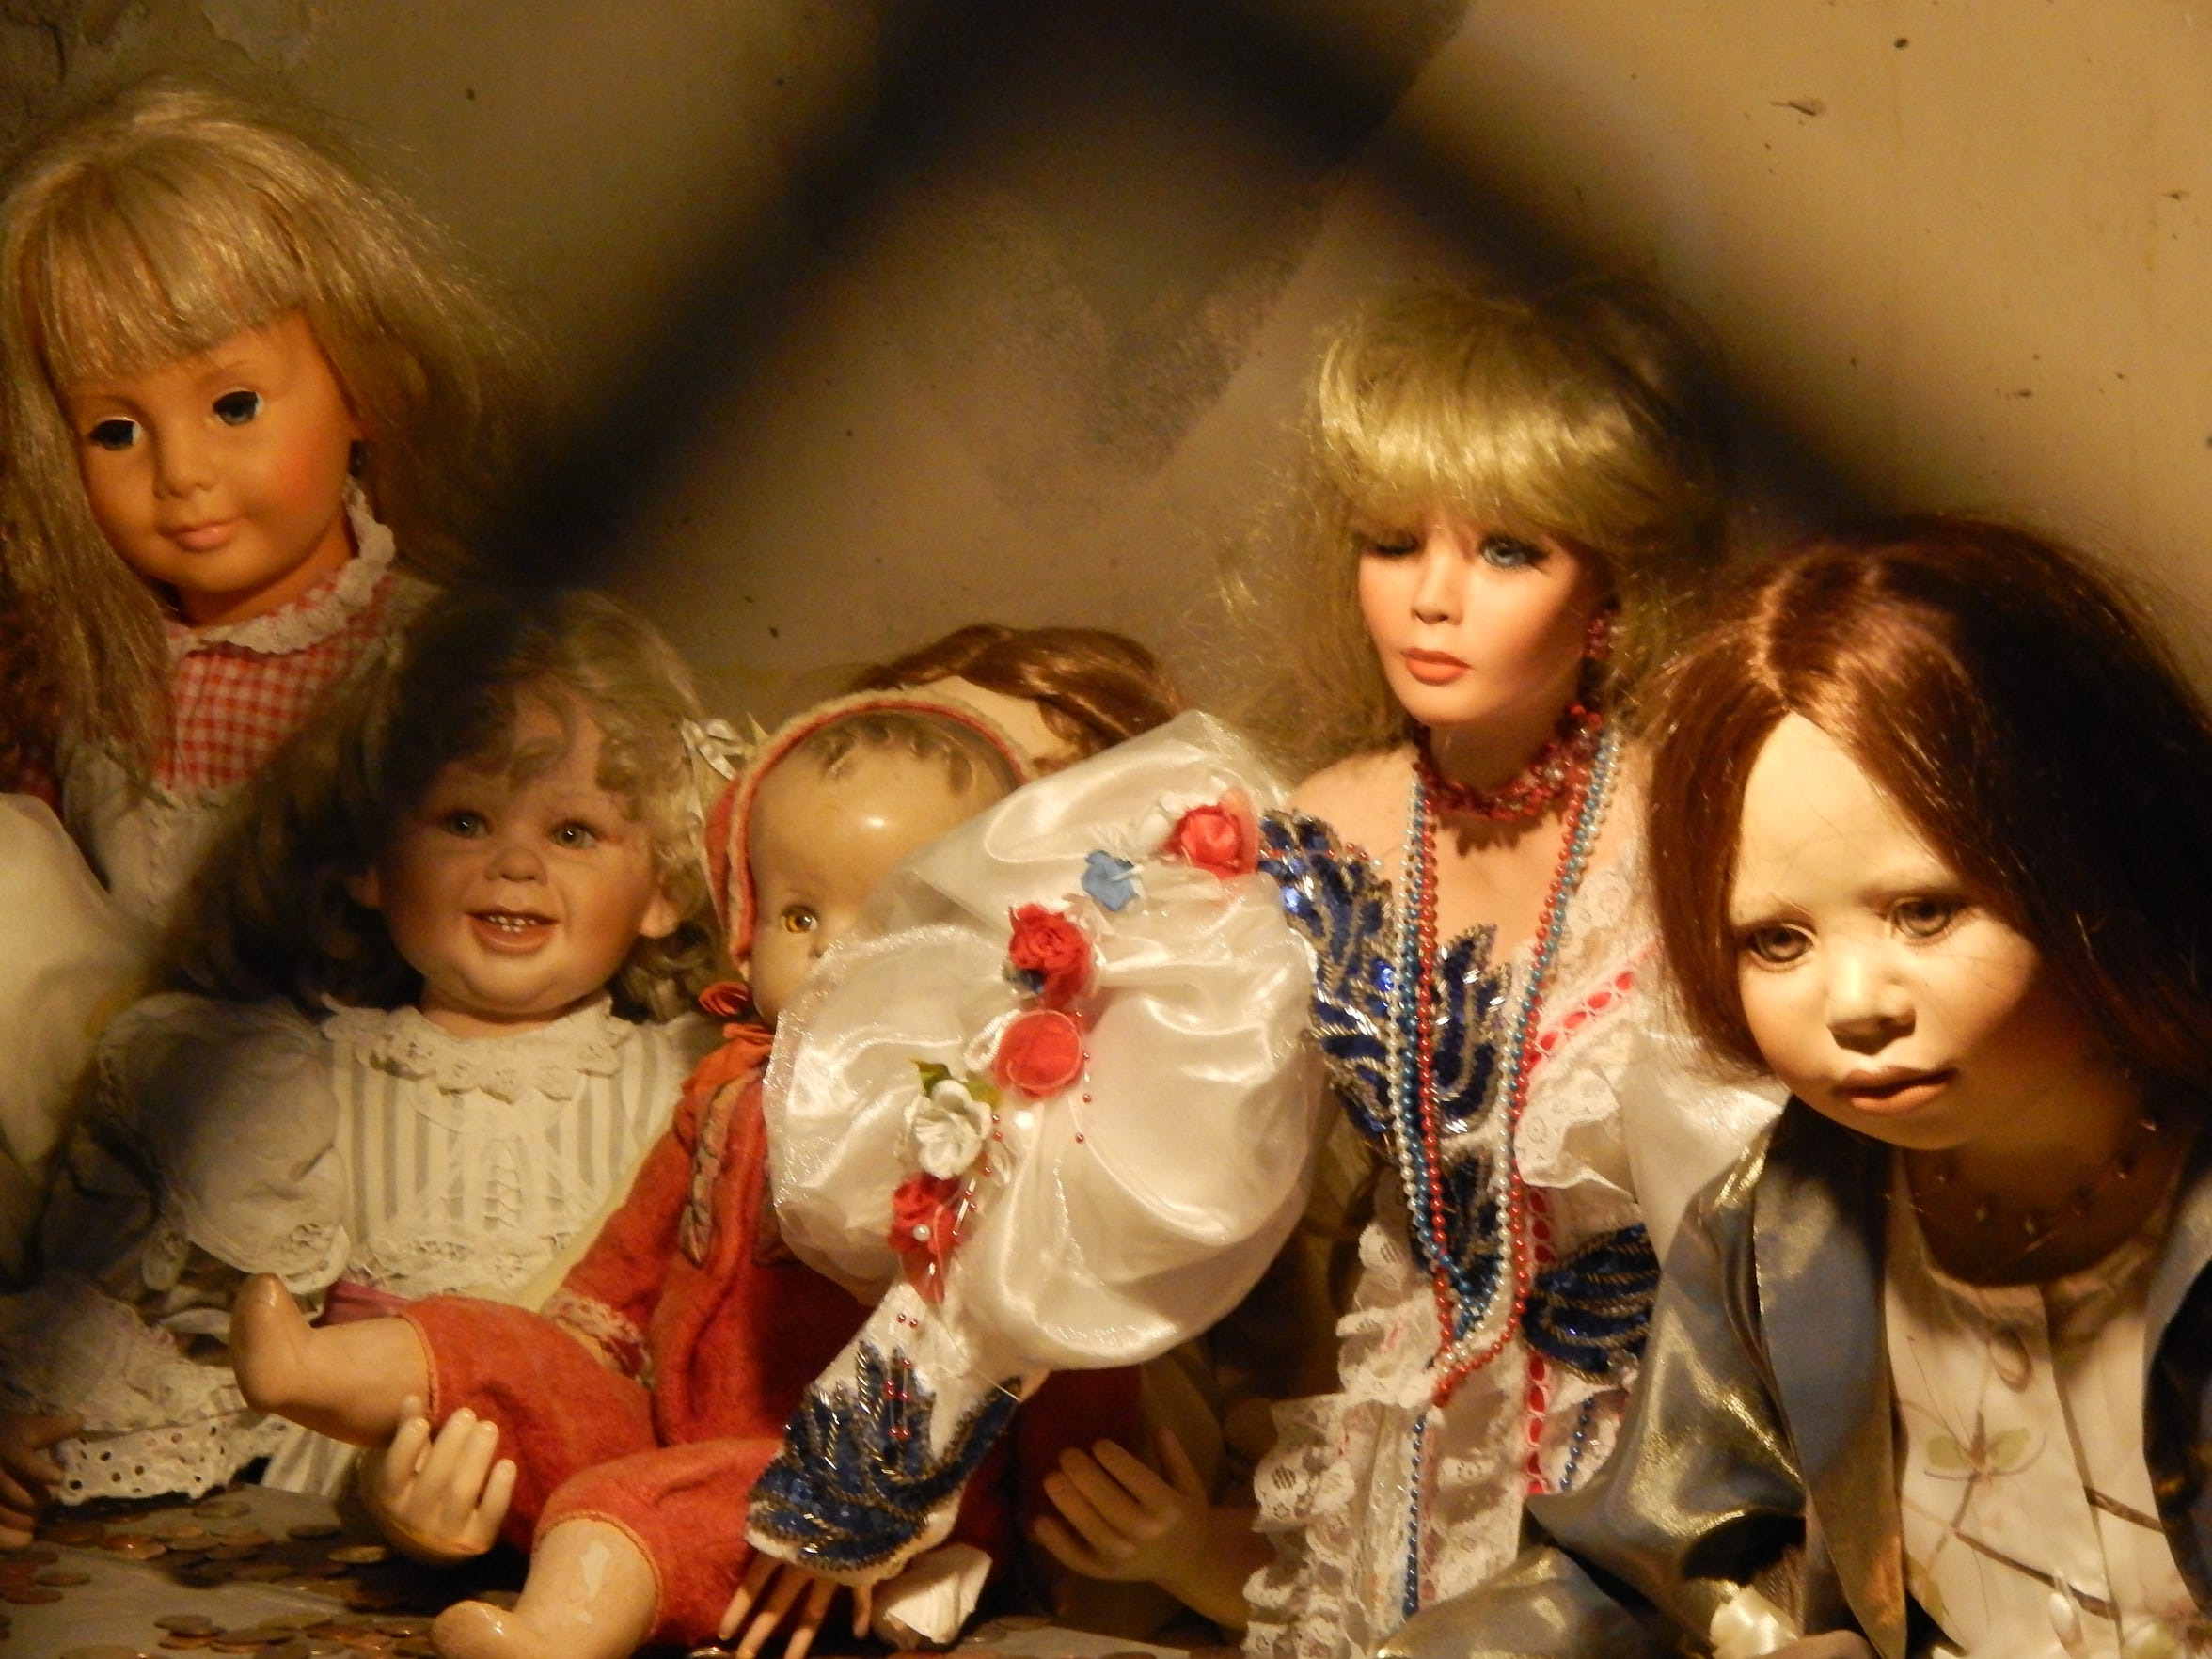 The dolls at Hanny's are part of an art installation, but rumors surround them.